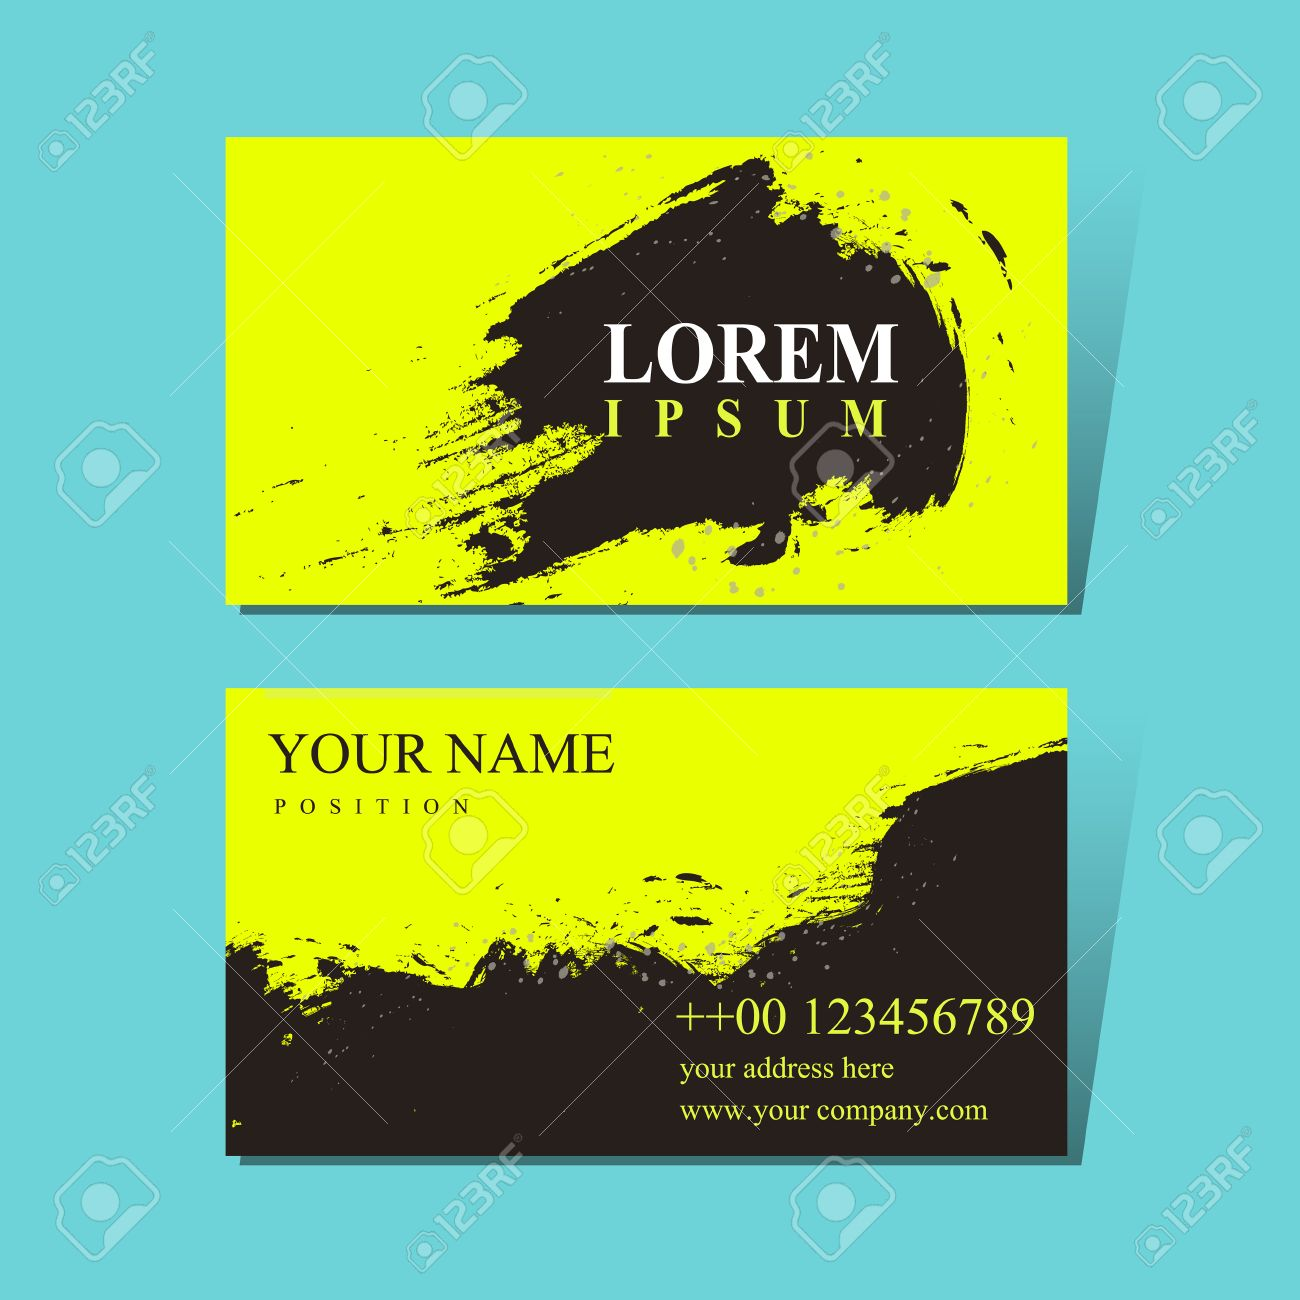 Attractive Business Card Design Template With Chinese Calligraphy ...